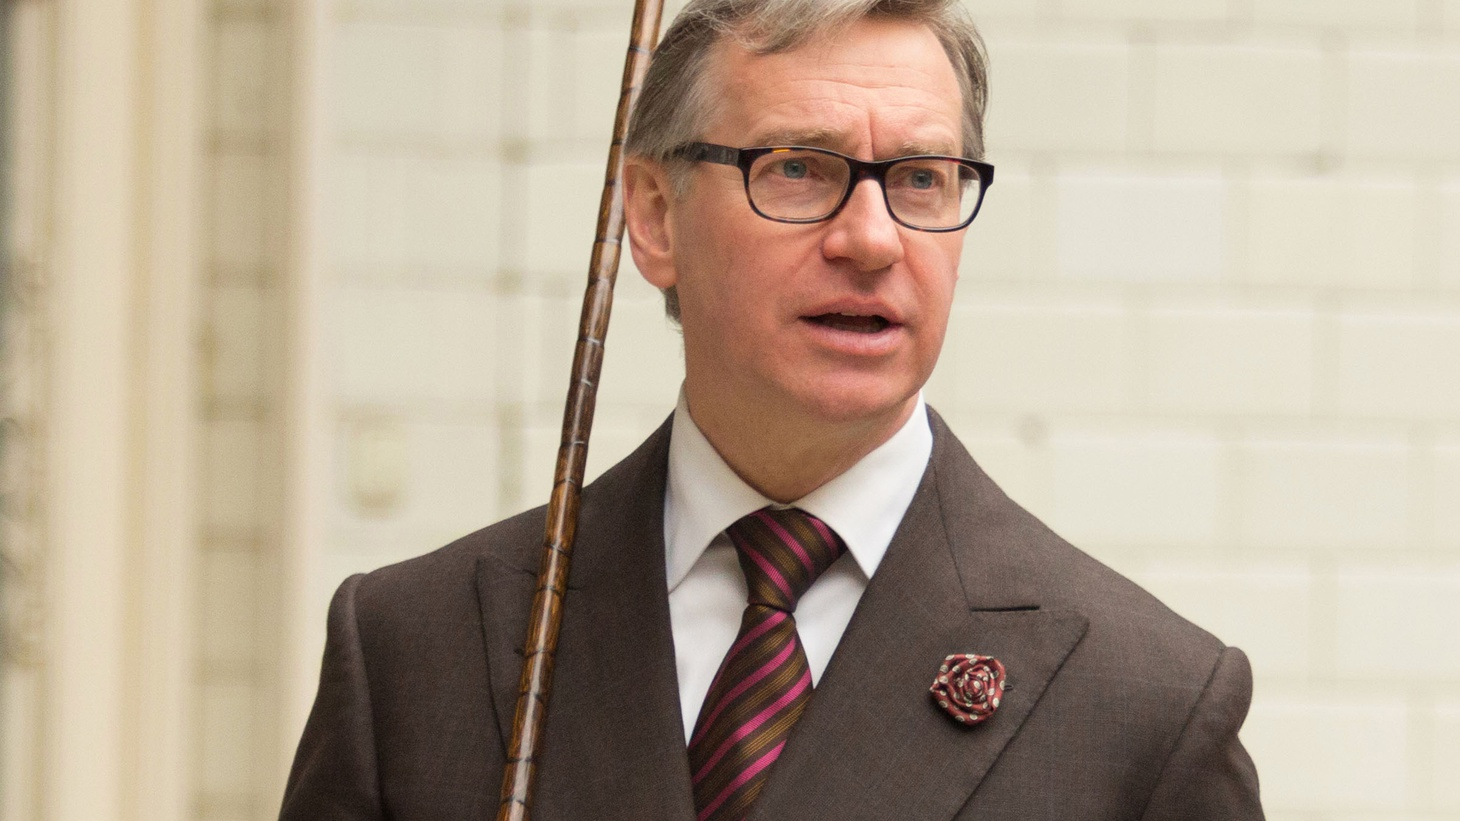 A Simple Favor director Paul Feig discusses his foray into menswear design with J. Crew collaboration.